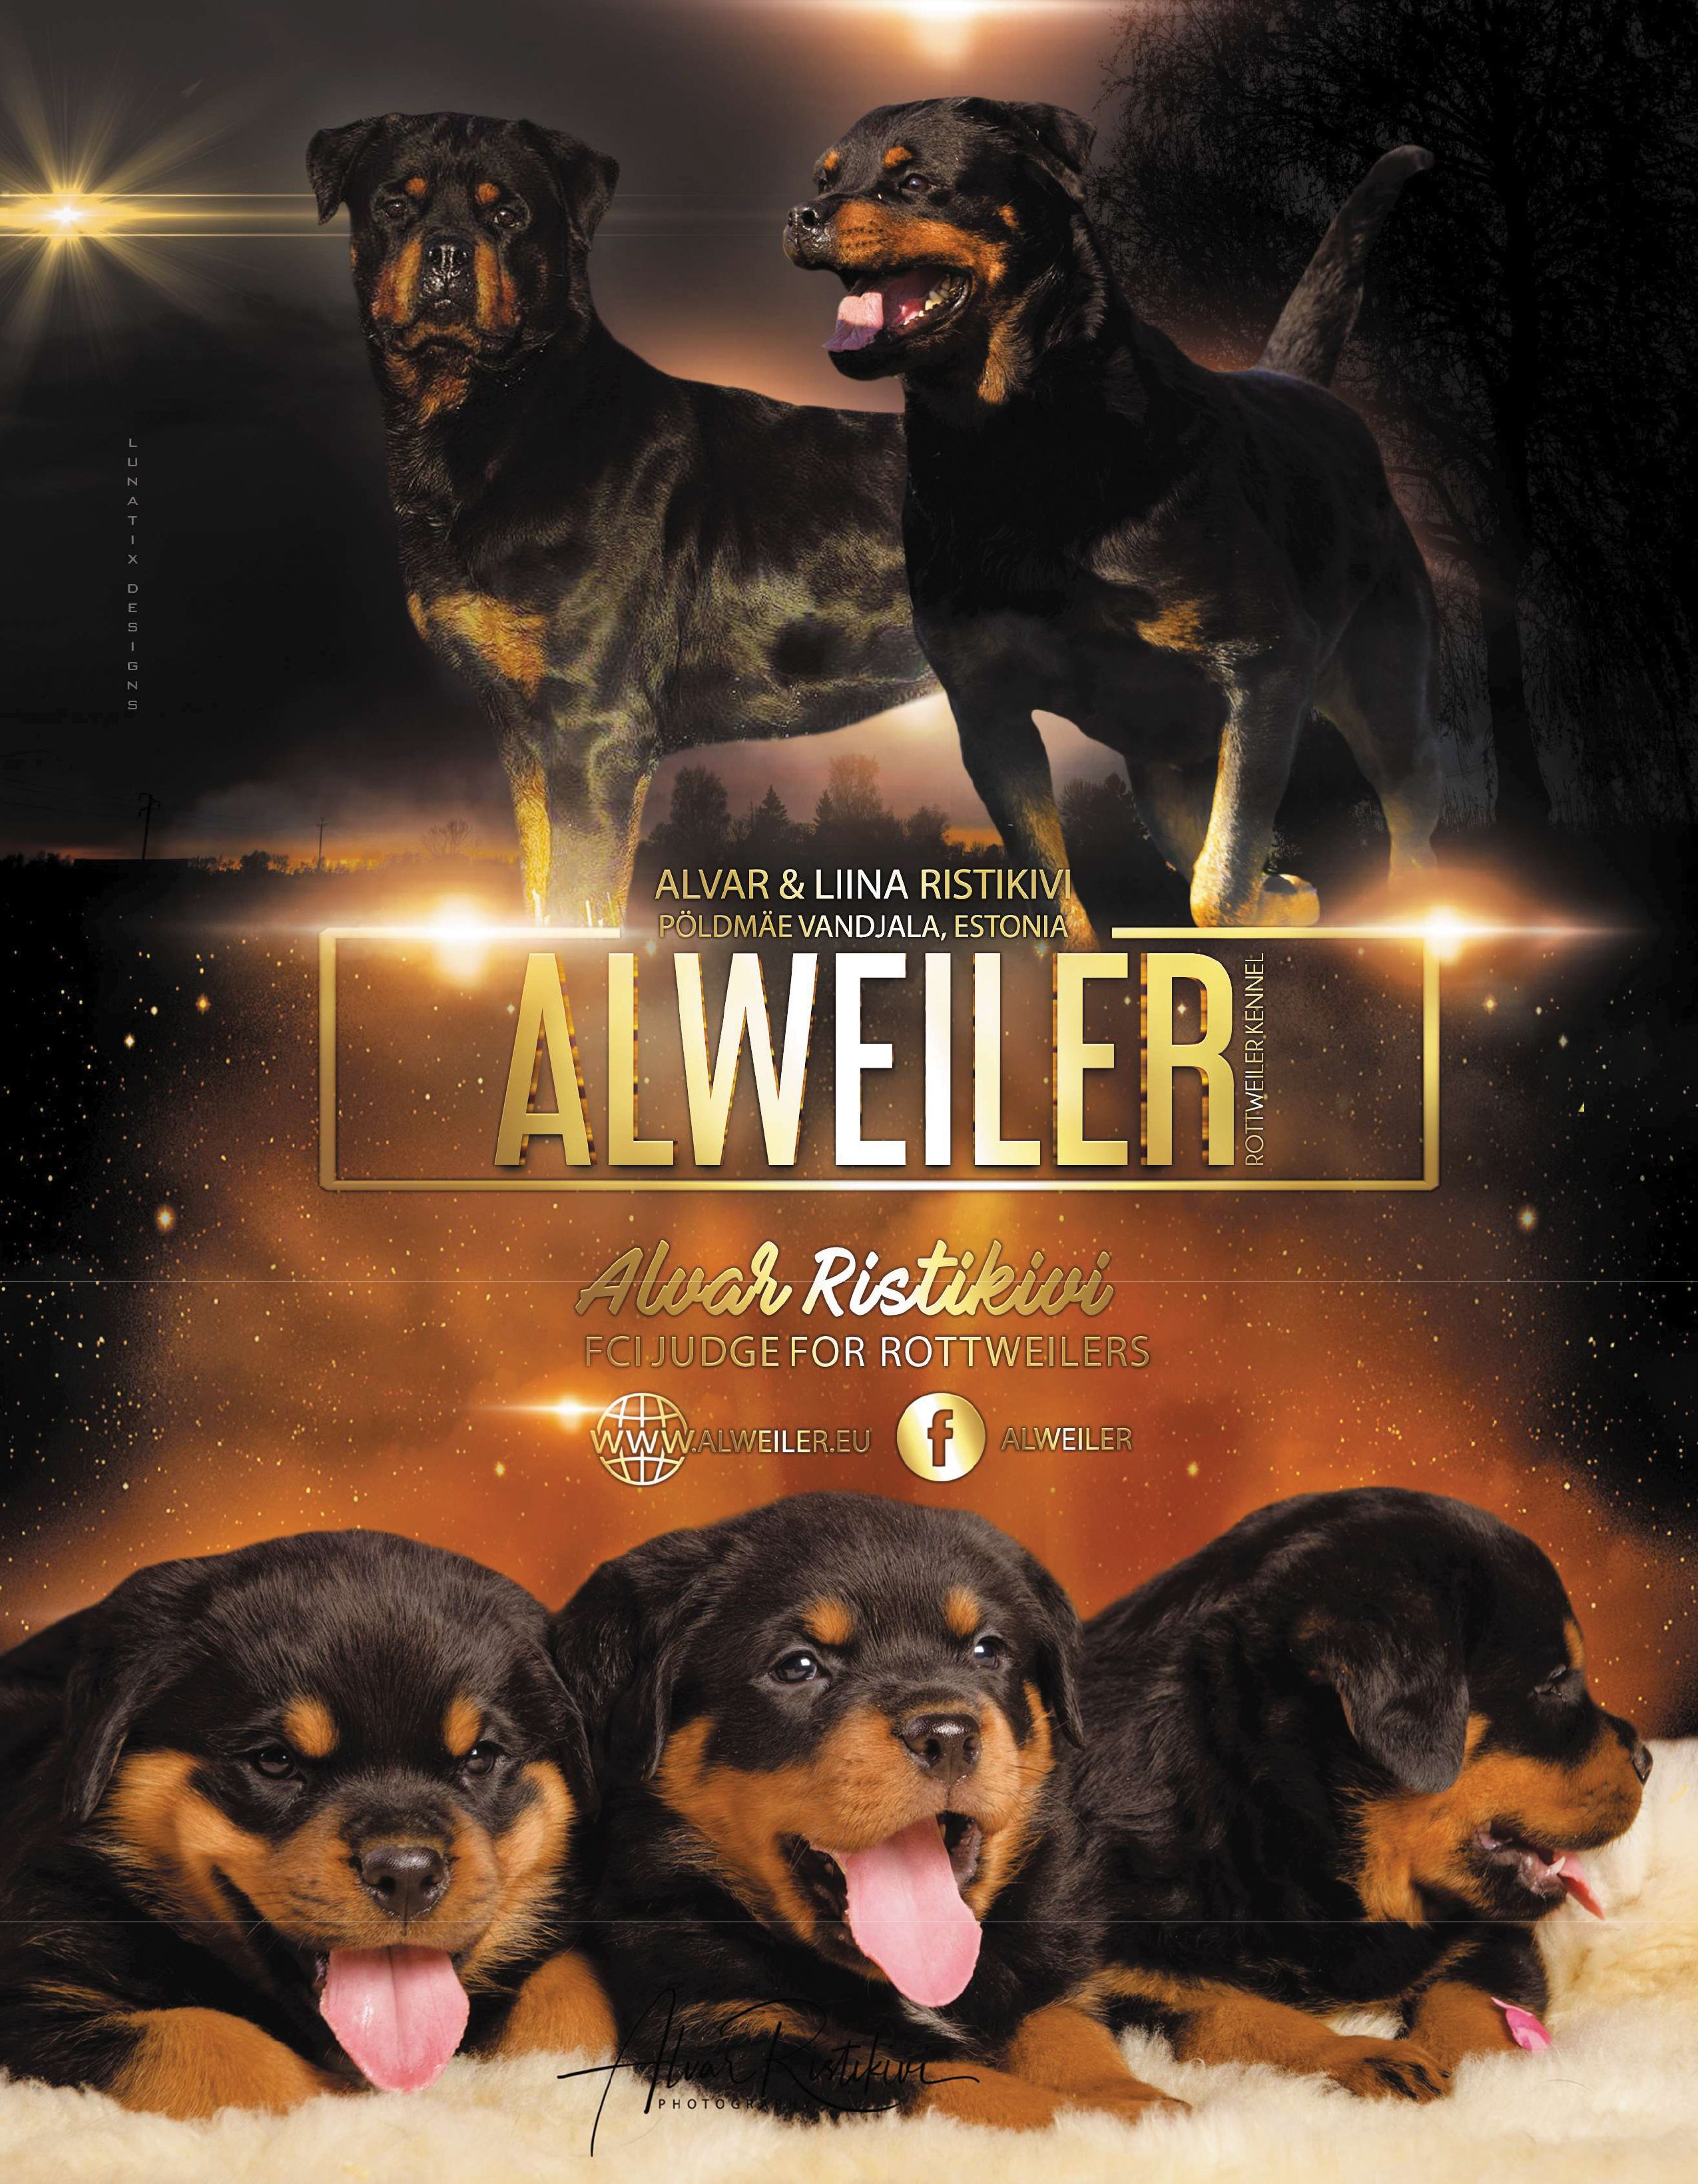 Alweiler Rottweiler Kennel Fci Breed Judge Alvar Ristikivi Liina